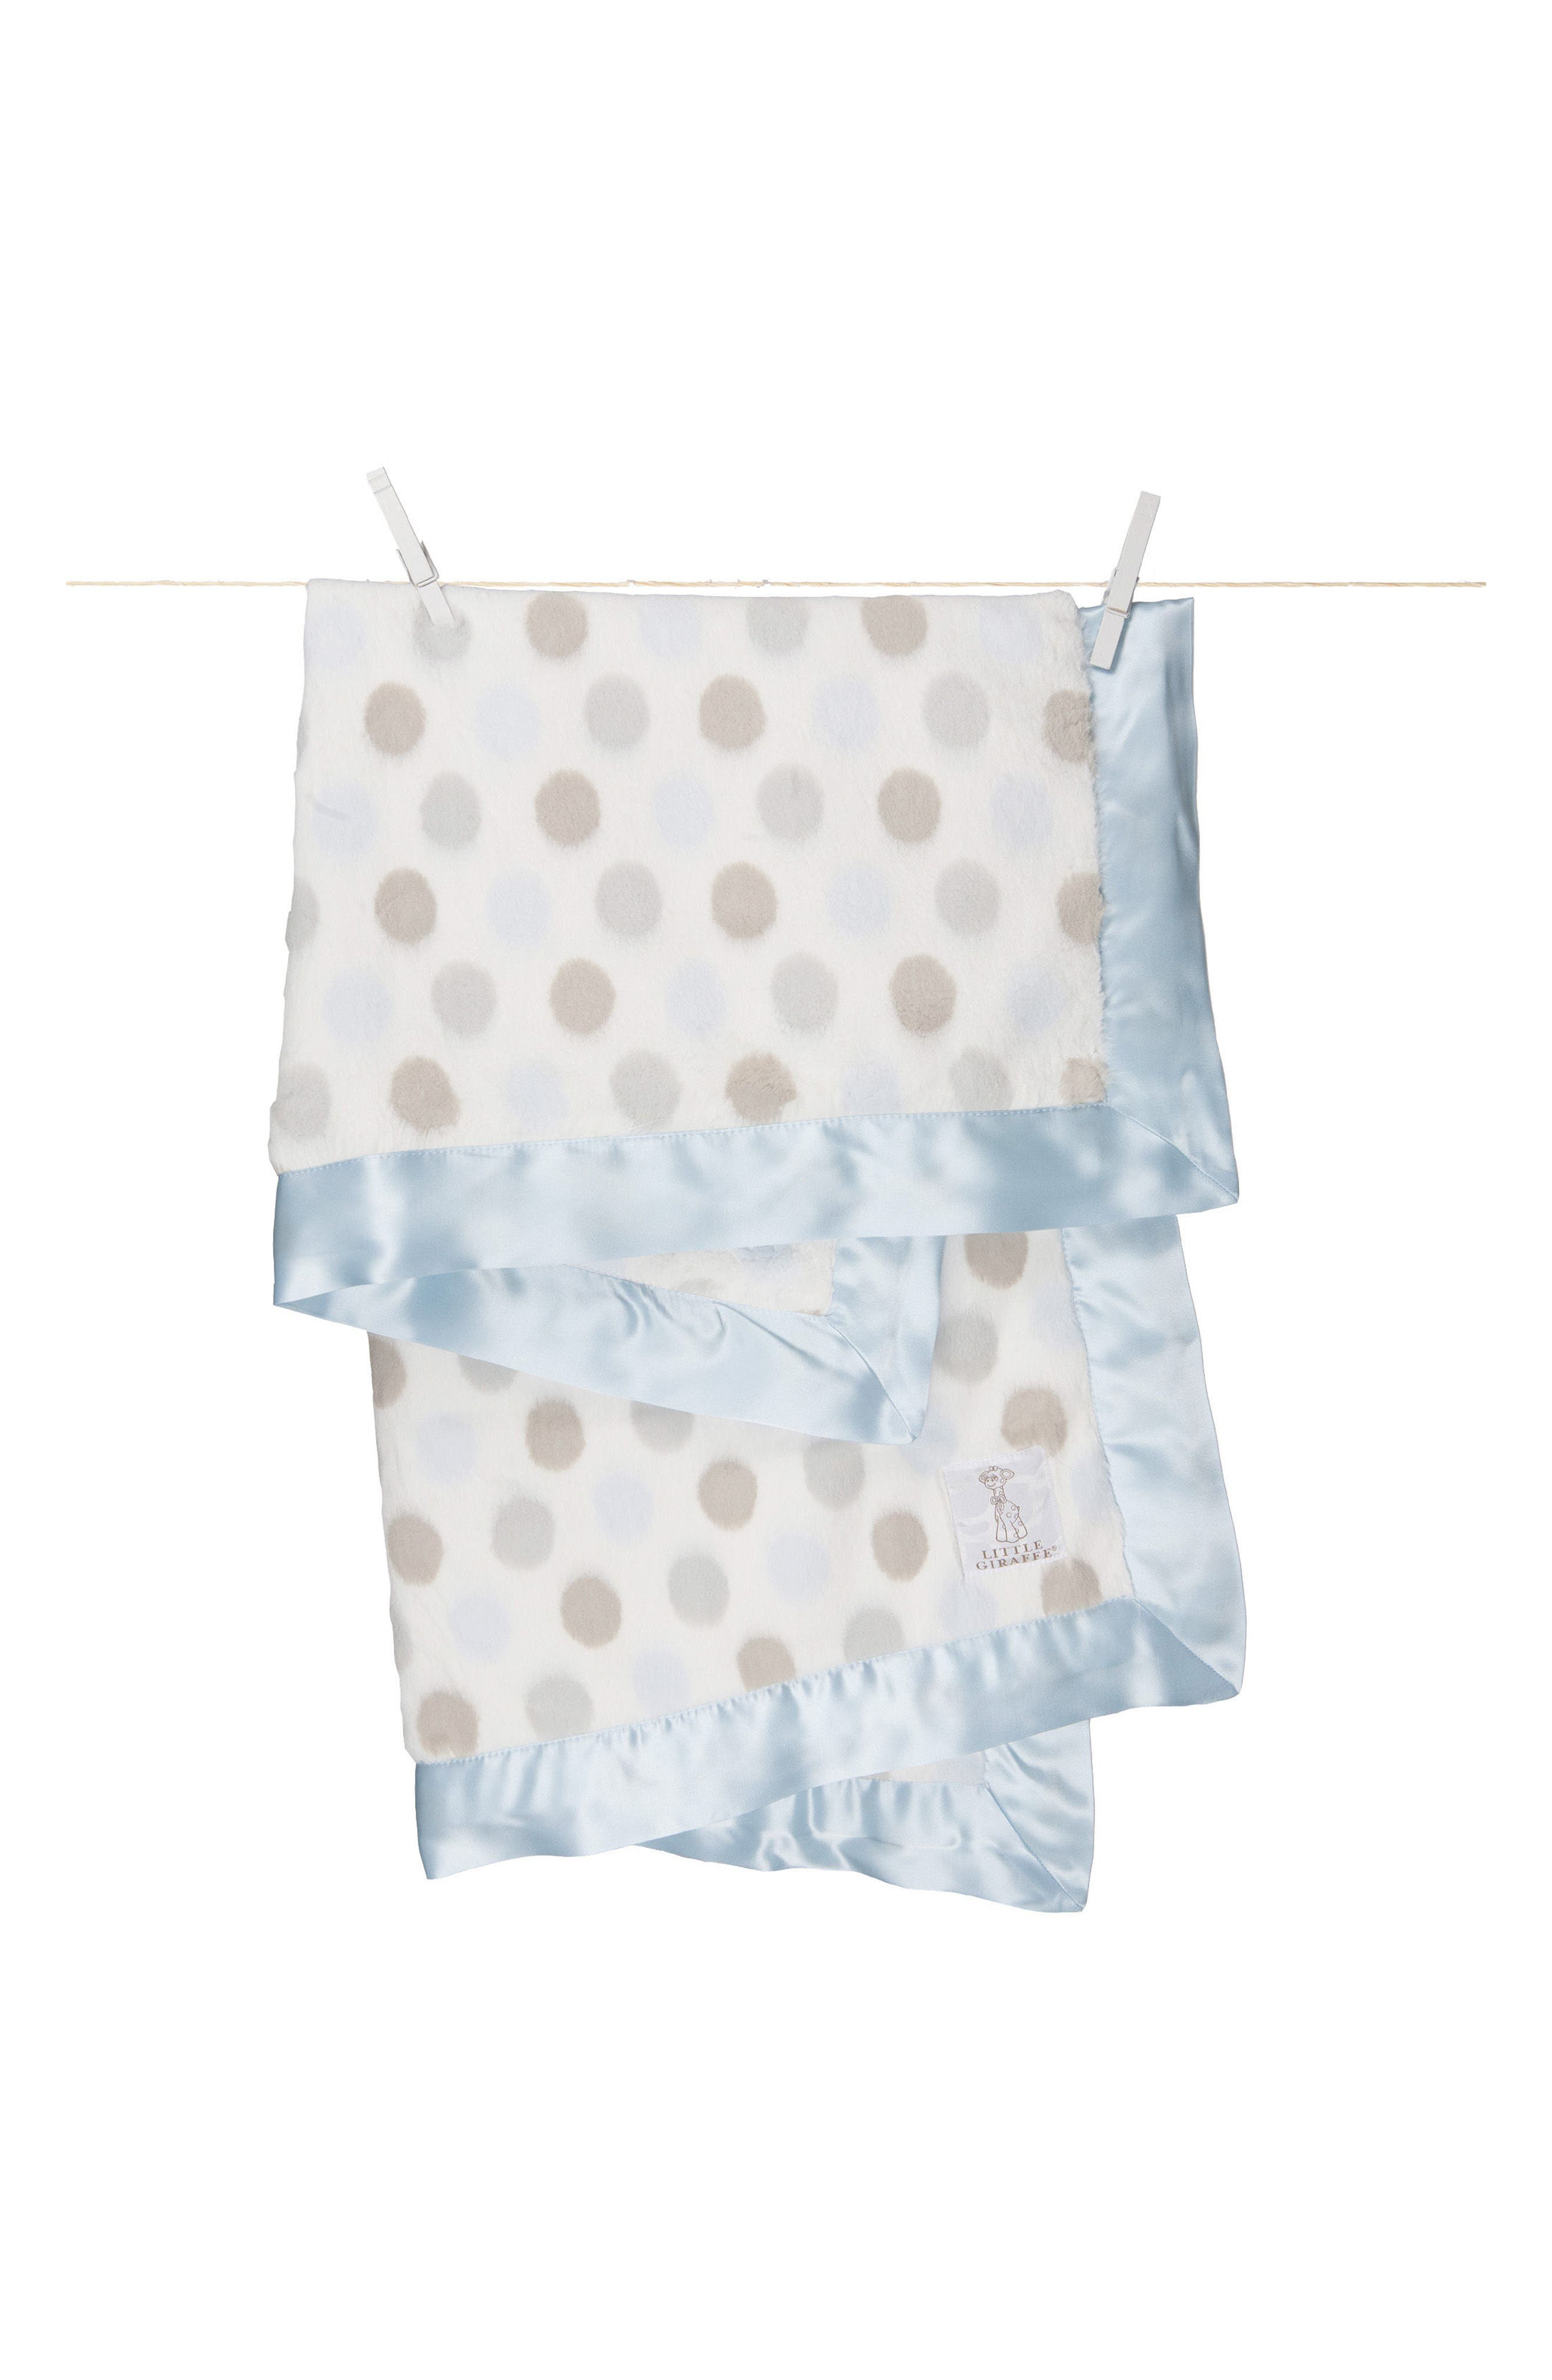 Alternate Image 1 Selected - Little Giraffe 'Luxe Dot' Blanket